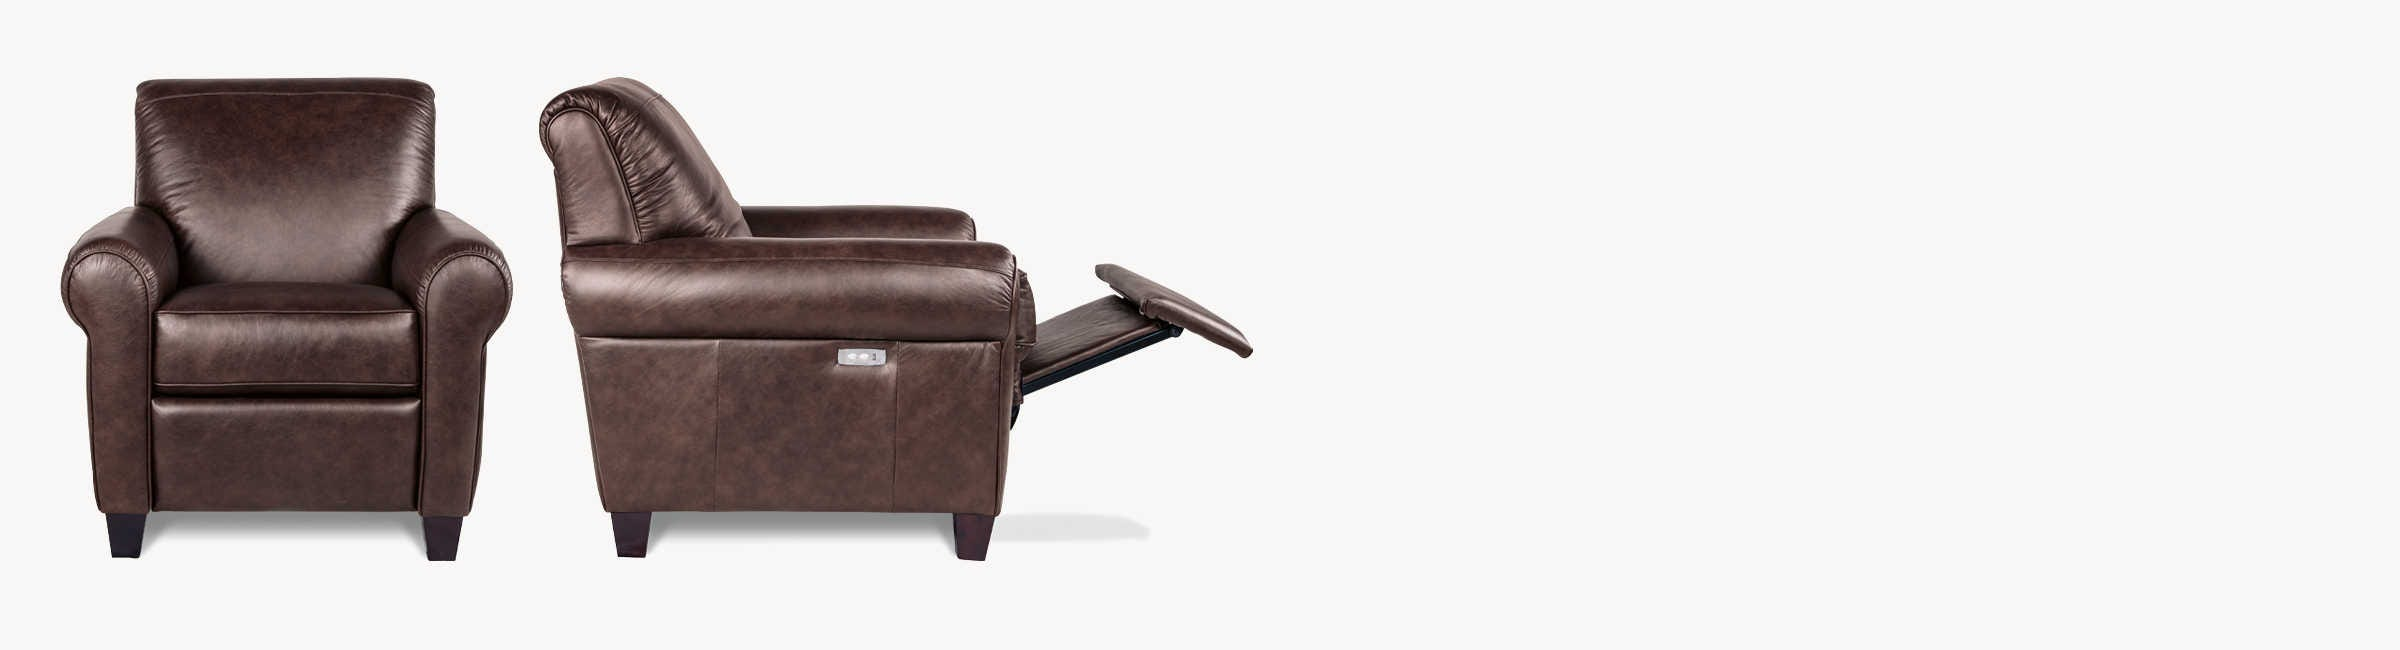 duo® Recliners